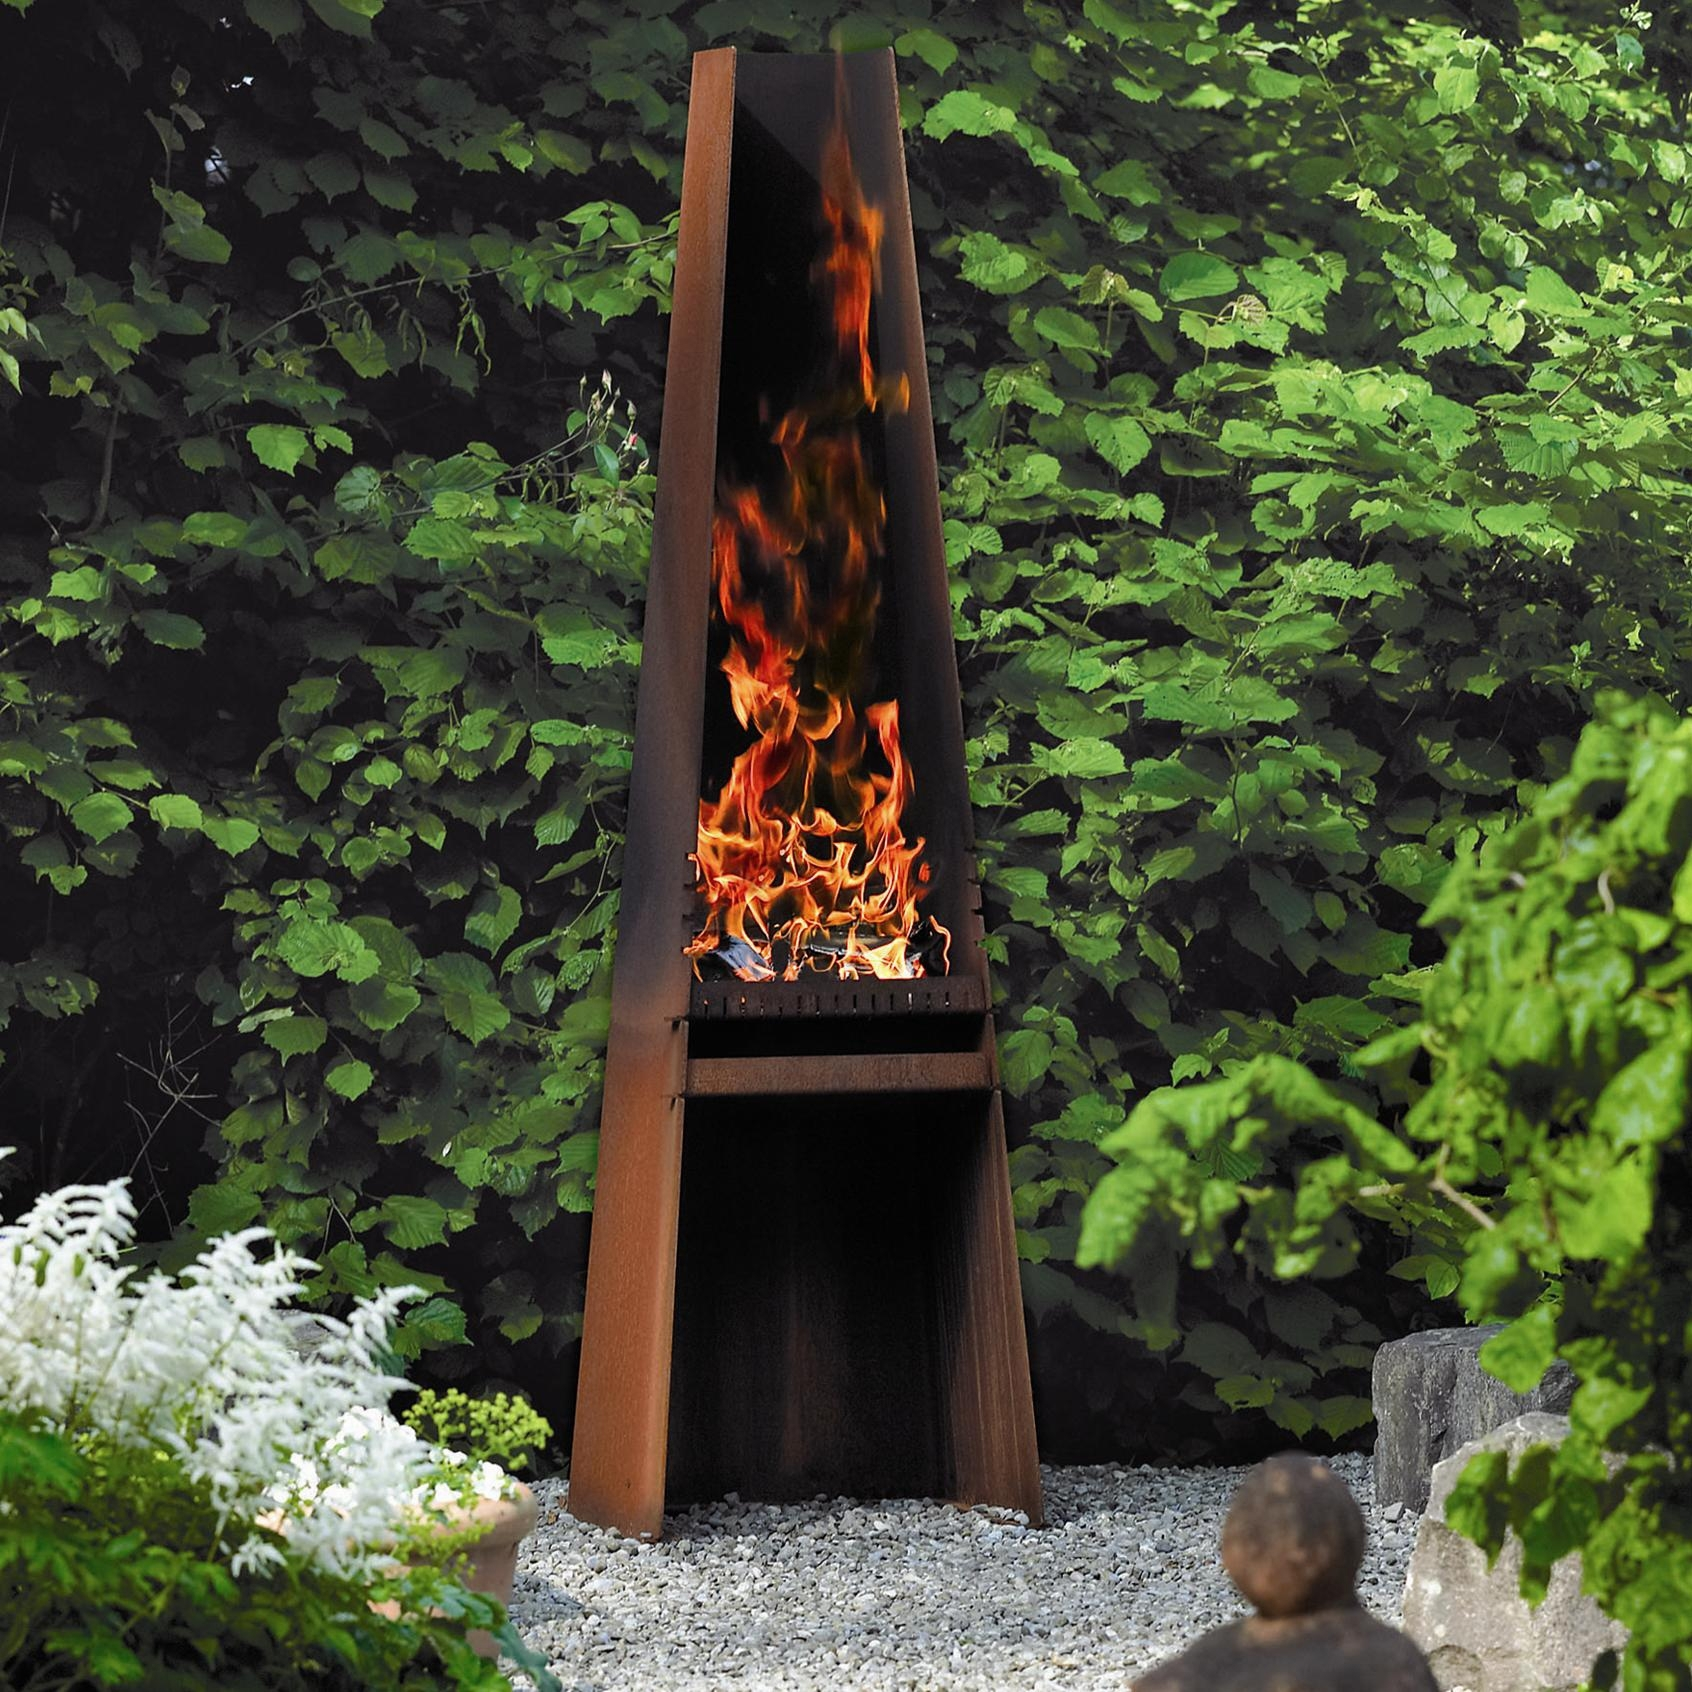 Rais Gizeh Outdoor Wood Fireplace And Grill For Sale With Regard To Unique Outdoor Fireplaces Grill Diy Unique Outdoor Fireplaces Grill